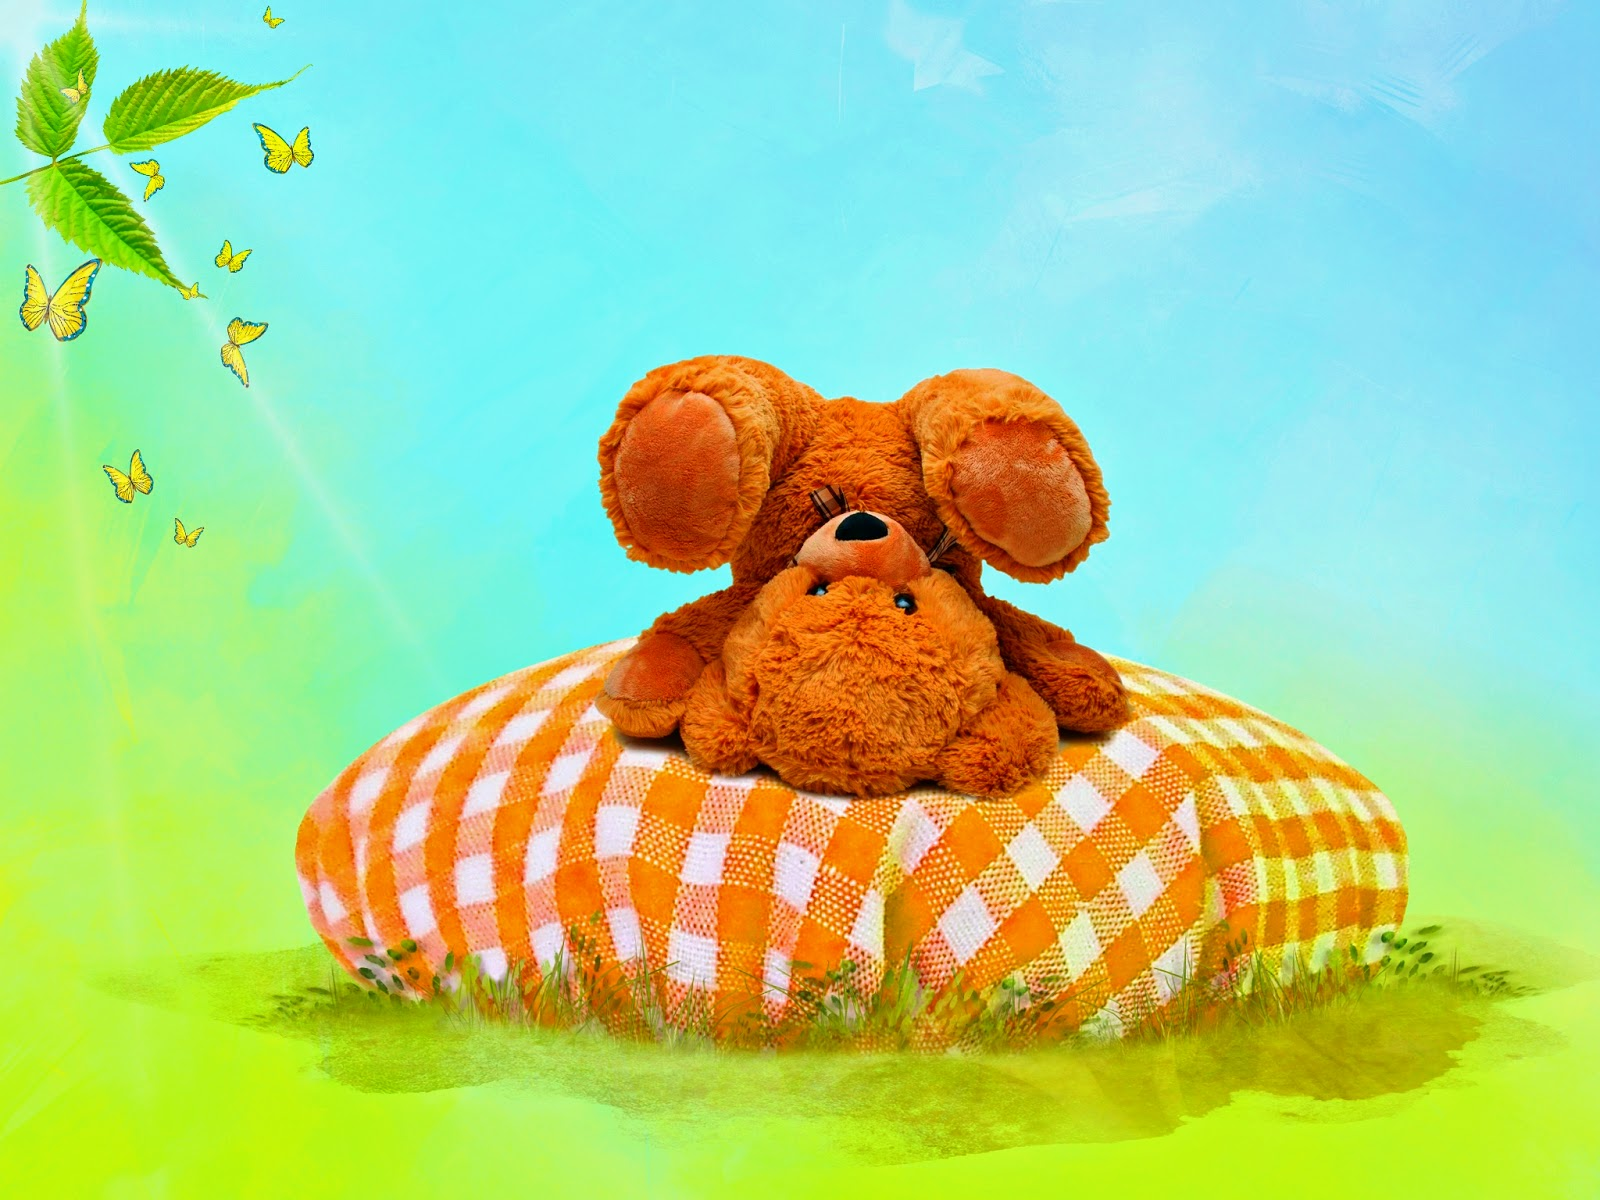 cute-teddy-playing-upside-down-on-pillow-picture-2048x1536.jpg